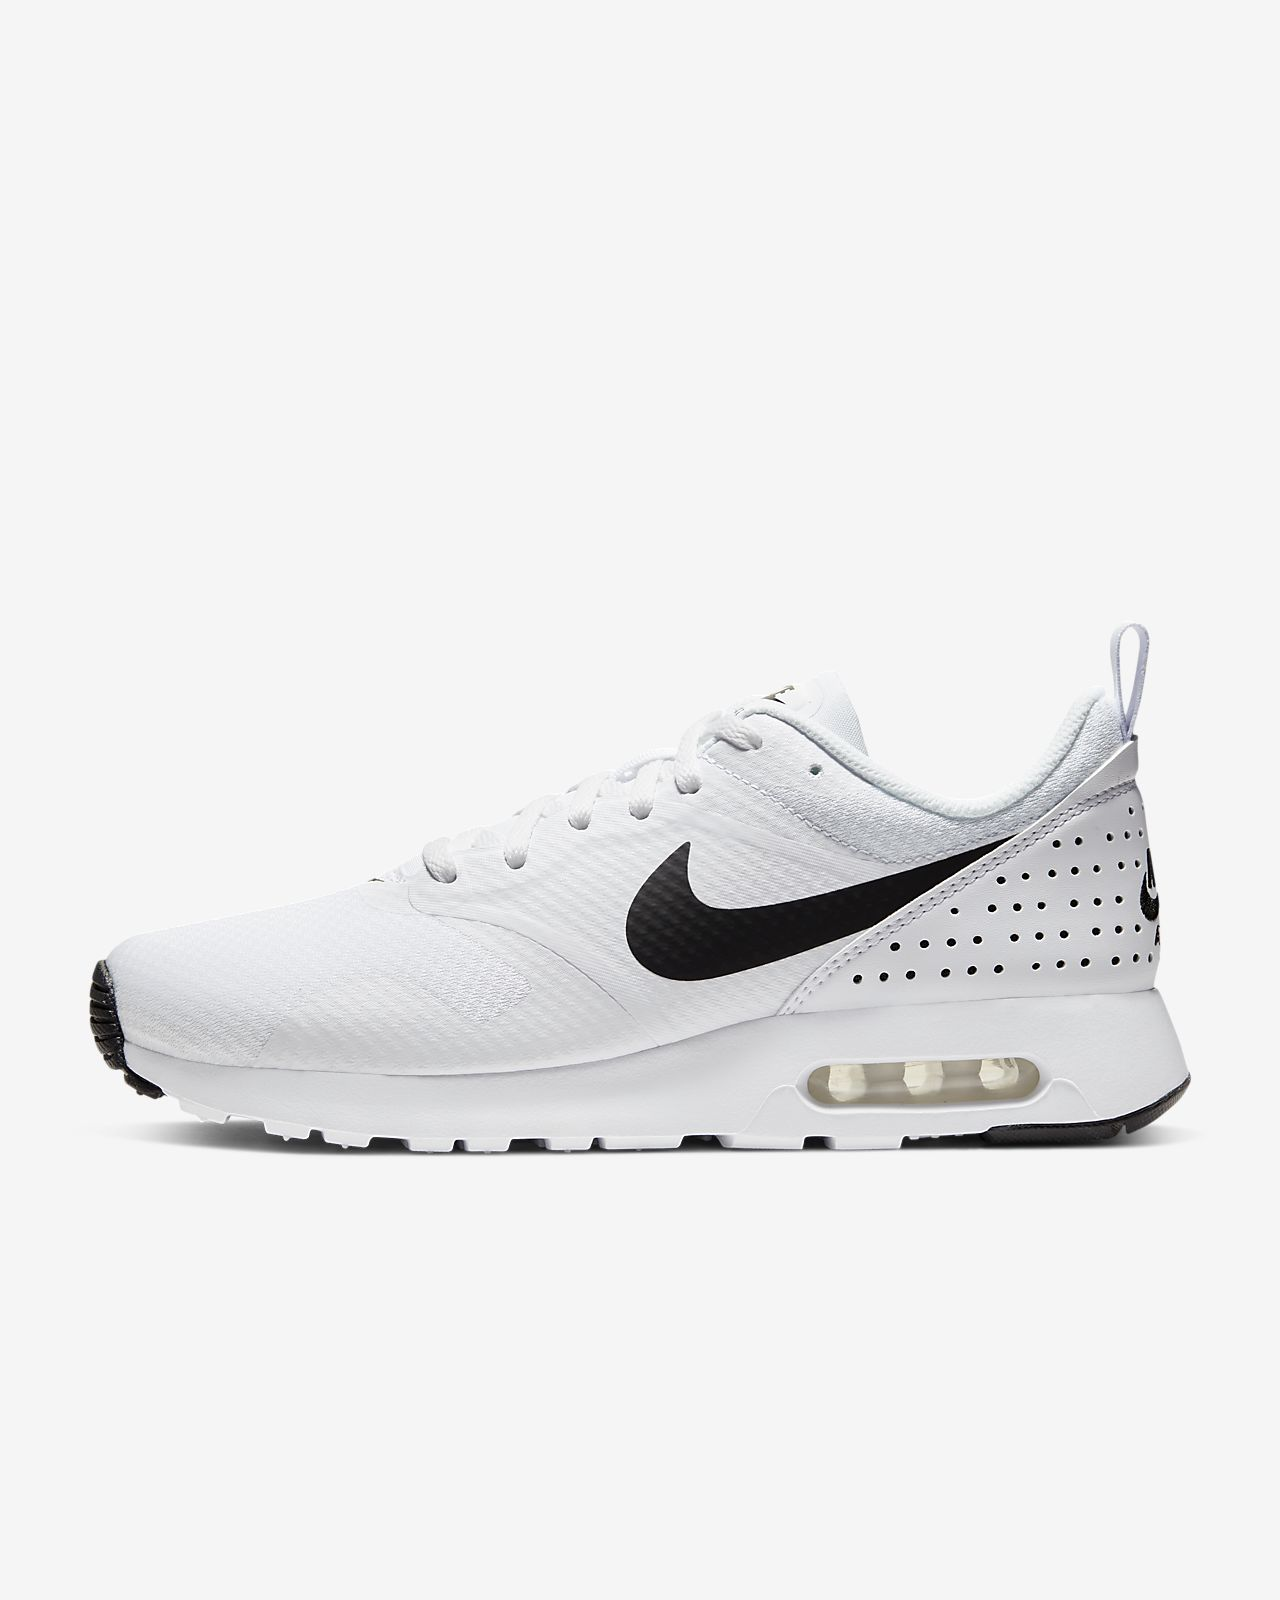 Nike Air Max Tavas Women's Shoe